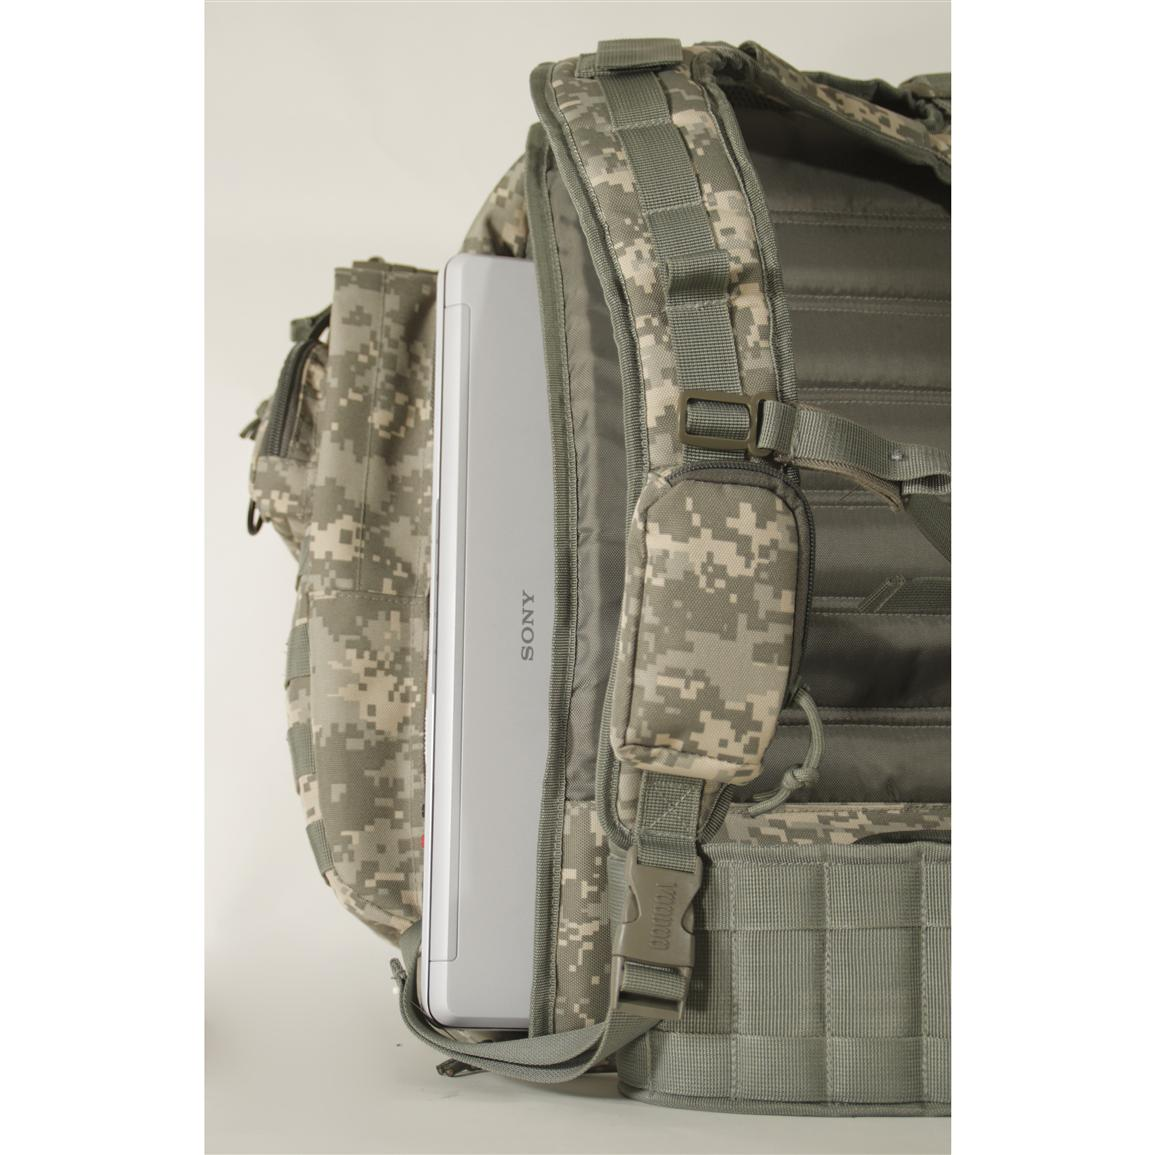 Includes multiple rows of MOLLE webbing attachment points